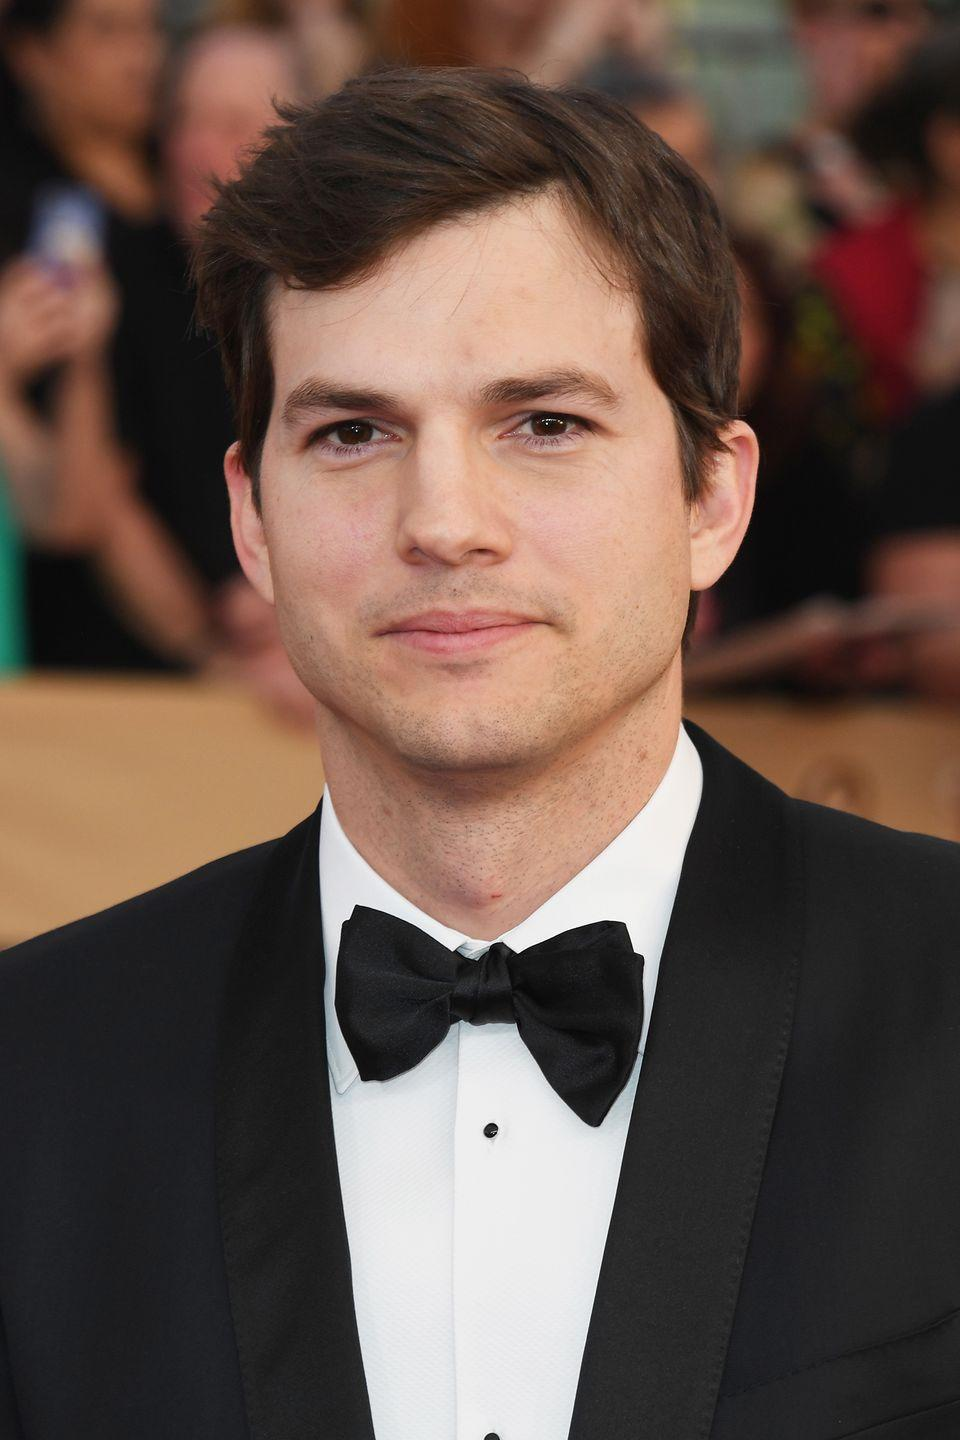 "<p>Before there was the PR disaster that was Kendall Jenner for Pepsi, there was Ashton Kutcher for Pop Chips. Kutcher did a variety of accents in his 2012 commercial for the snack brand, but the one that <a href=""https://mashable.com/2012/05/02/ashton-kutcher-pop-chips/#B73uLDY1Sgqx"" rel=""nofollow noopener"" target=""_blank"" data-ylk=""slk:drew sharp criticism"" class=""link rapid-noclick-resp"">drew sharp criticism</a> was his portrayal of Raj, a fictional Indian character. Kutcher wore brown makeup (pardon me, but in WHAT WORLD did anybody think this was a good idea??). The ad was, unsurprisingly, swiftly pulled.</p>"